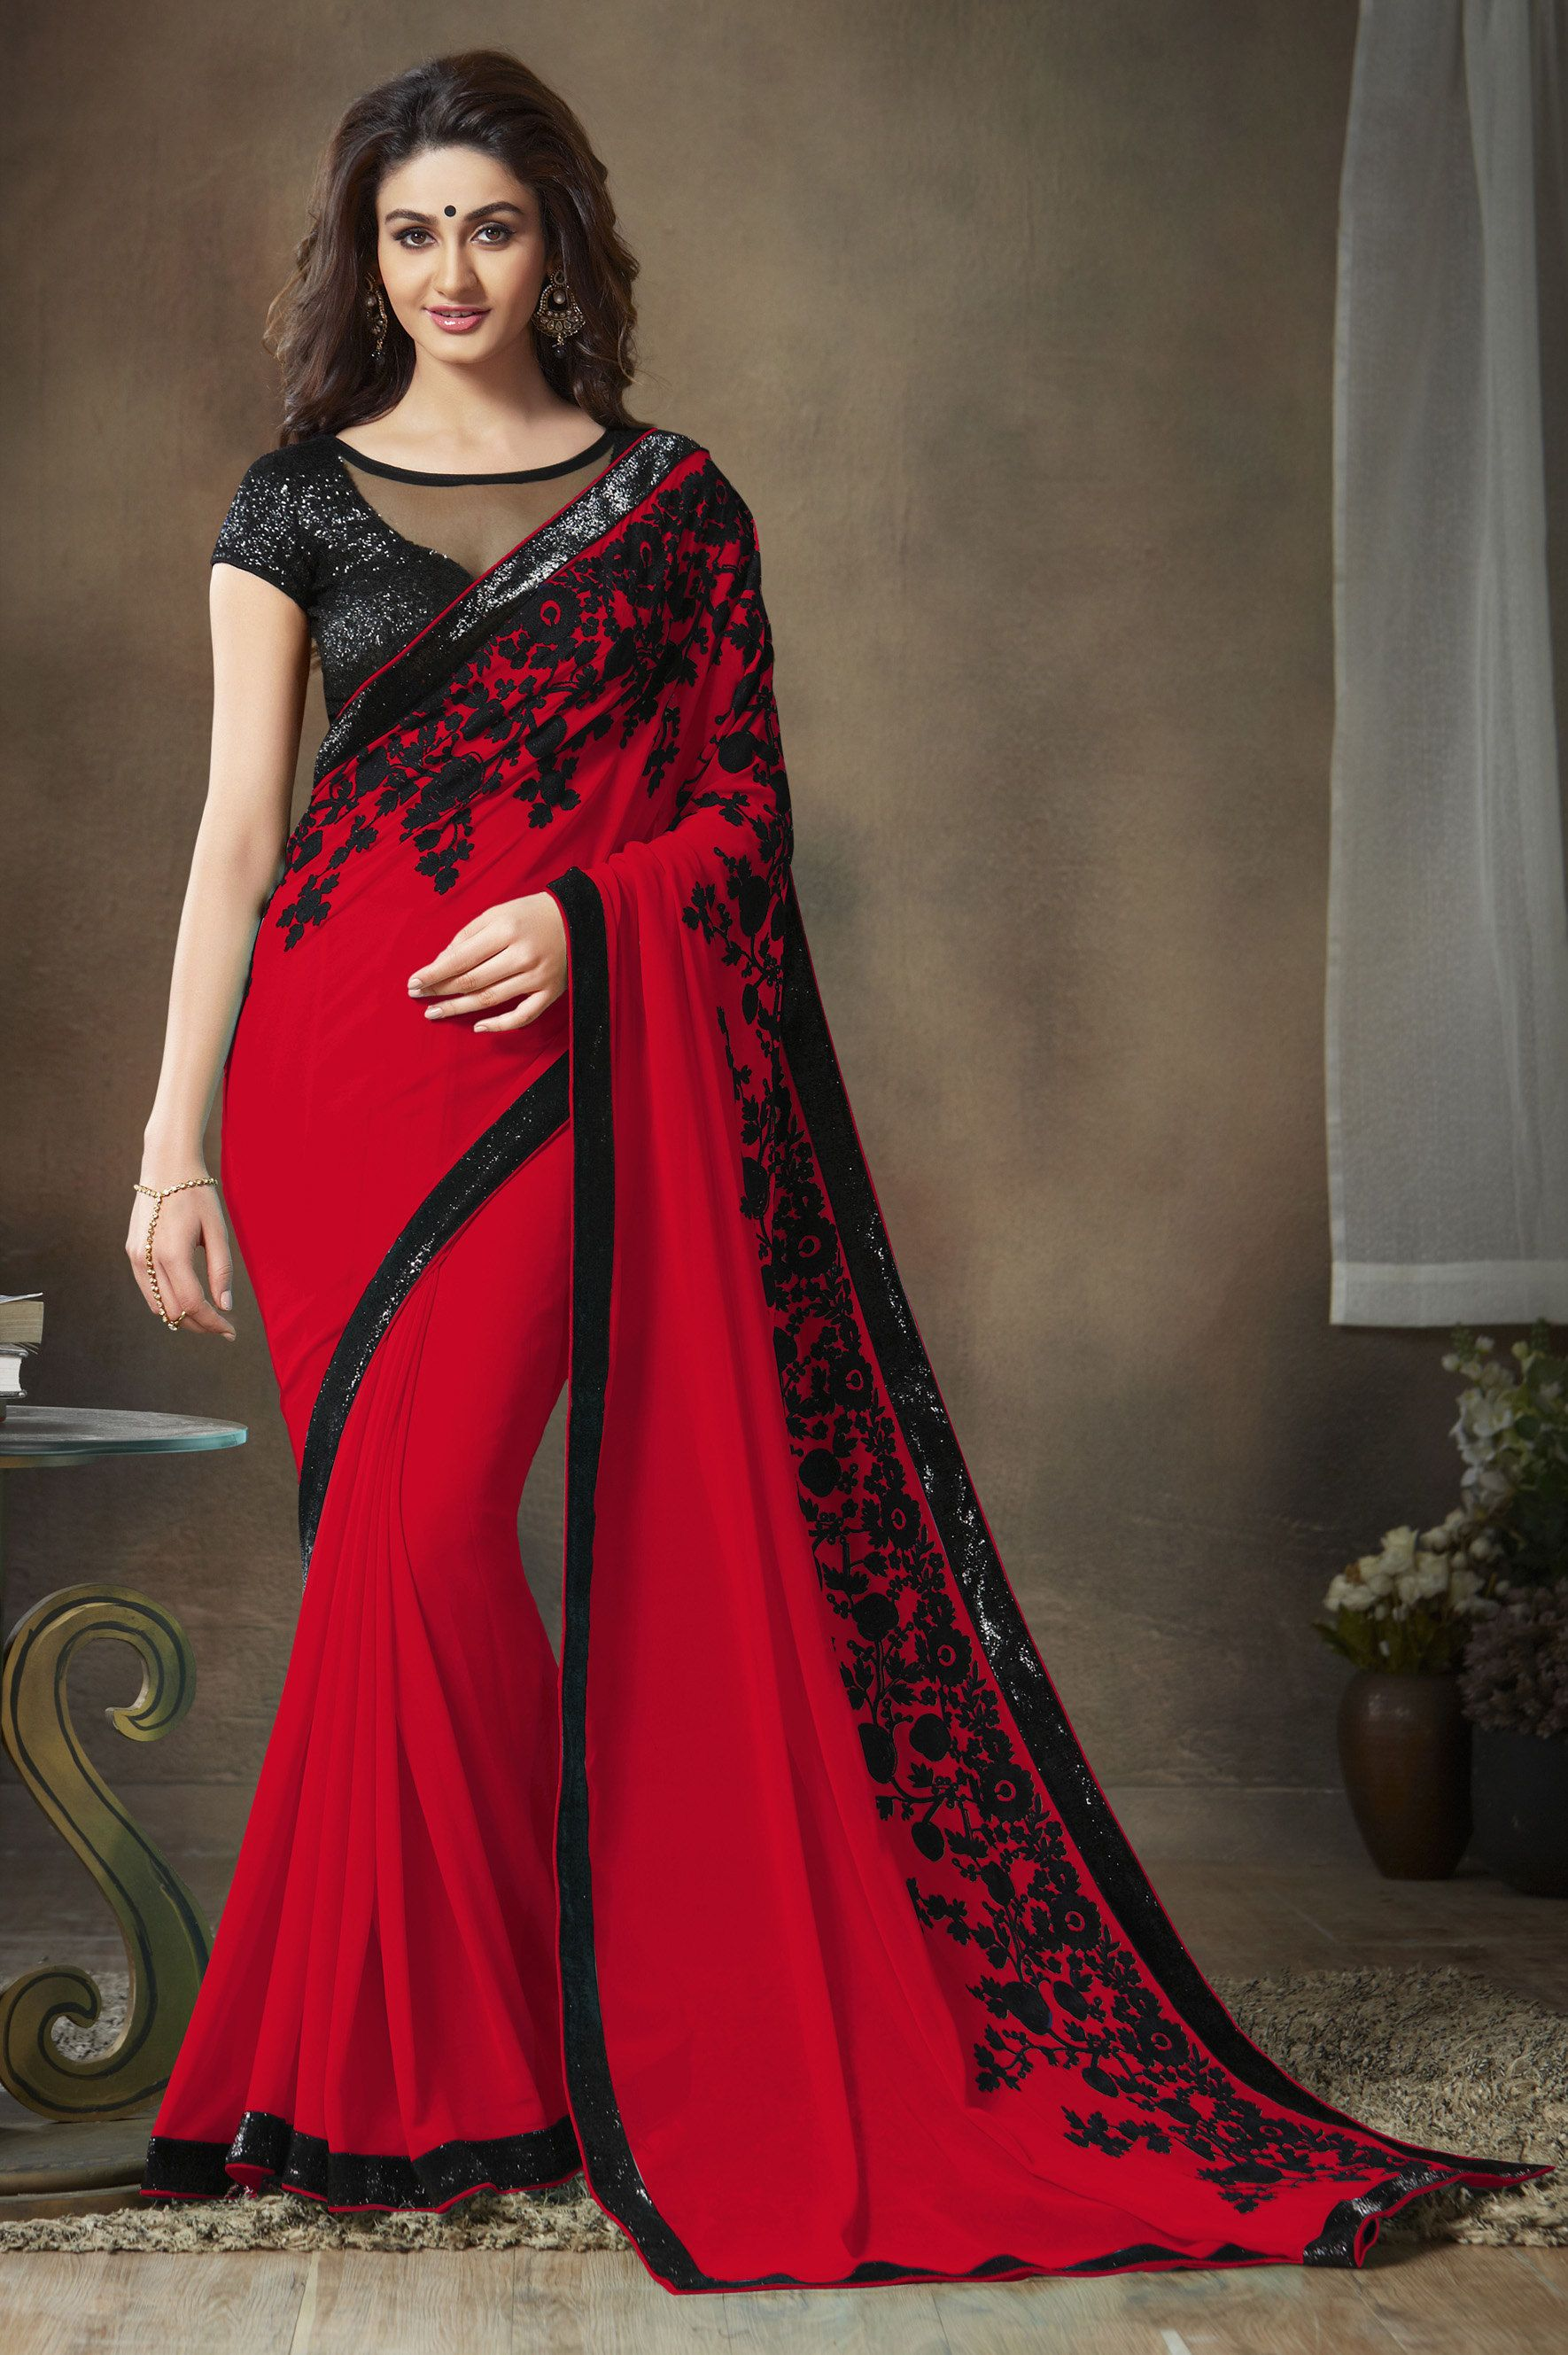 e62727c22c0a65 red saree with black floral border.